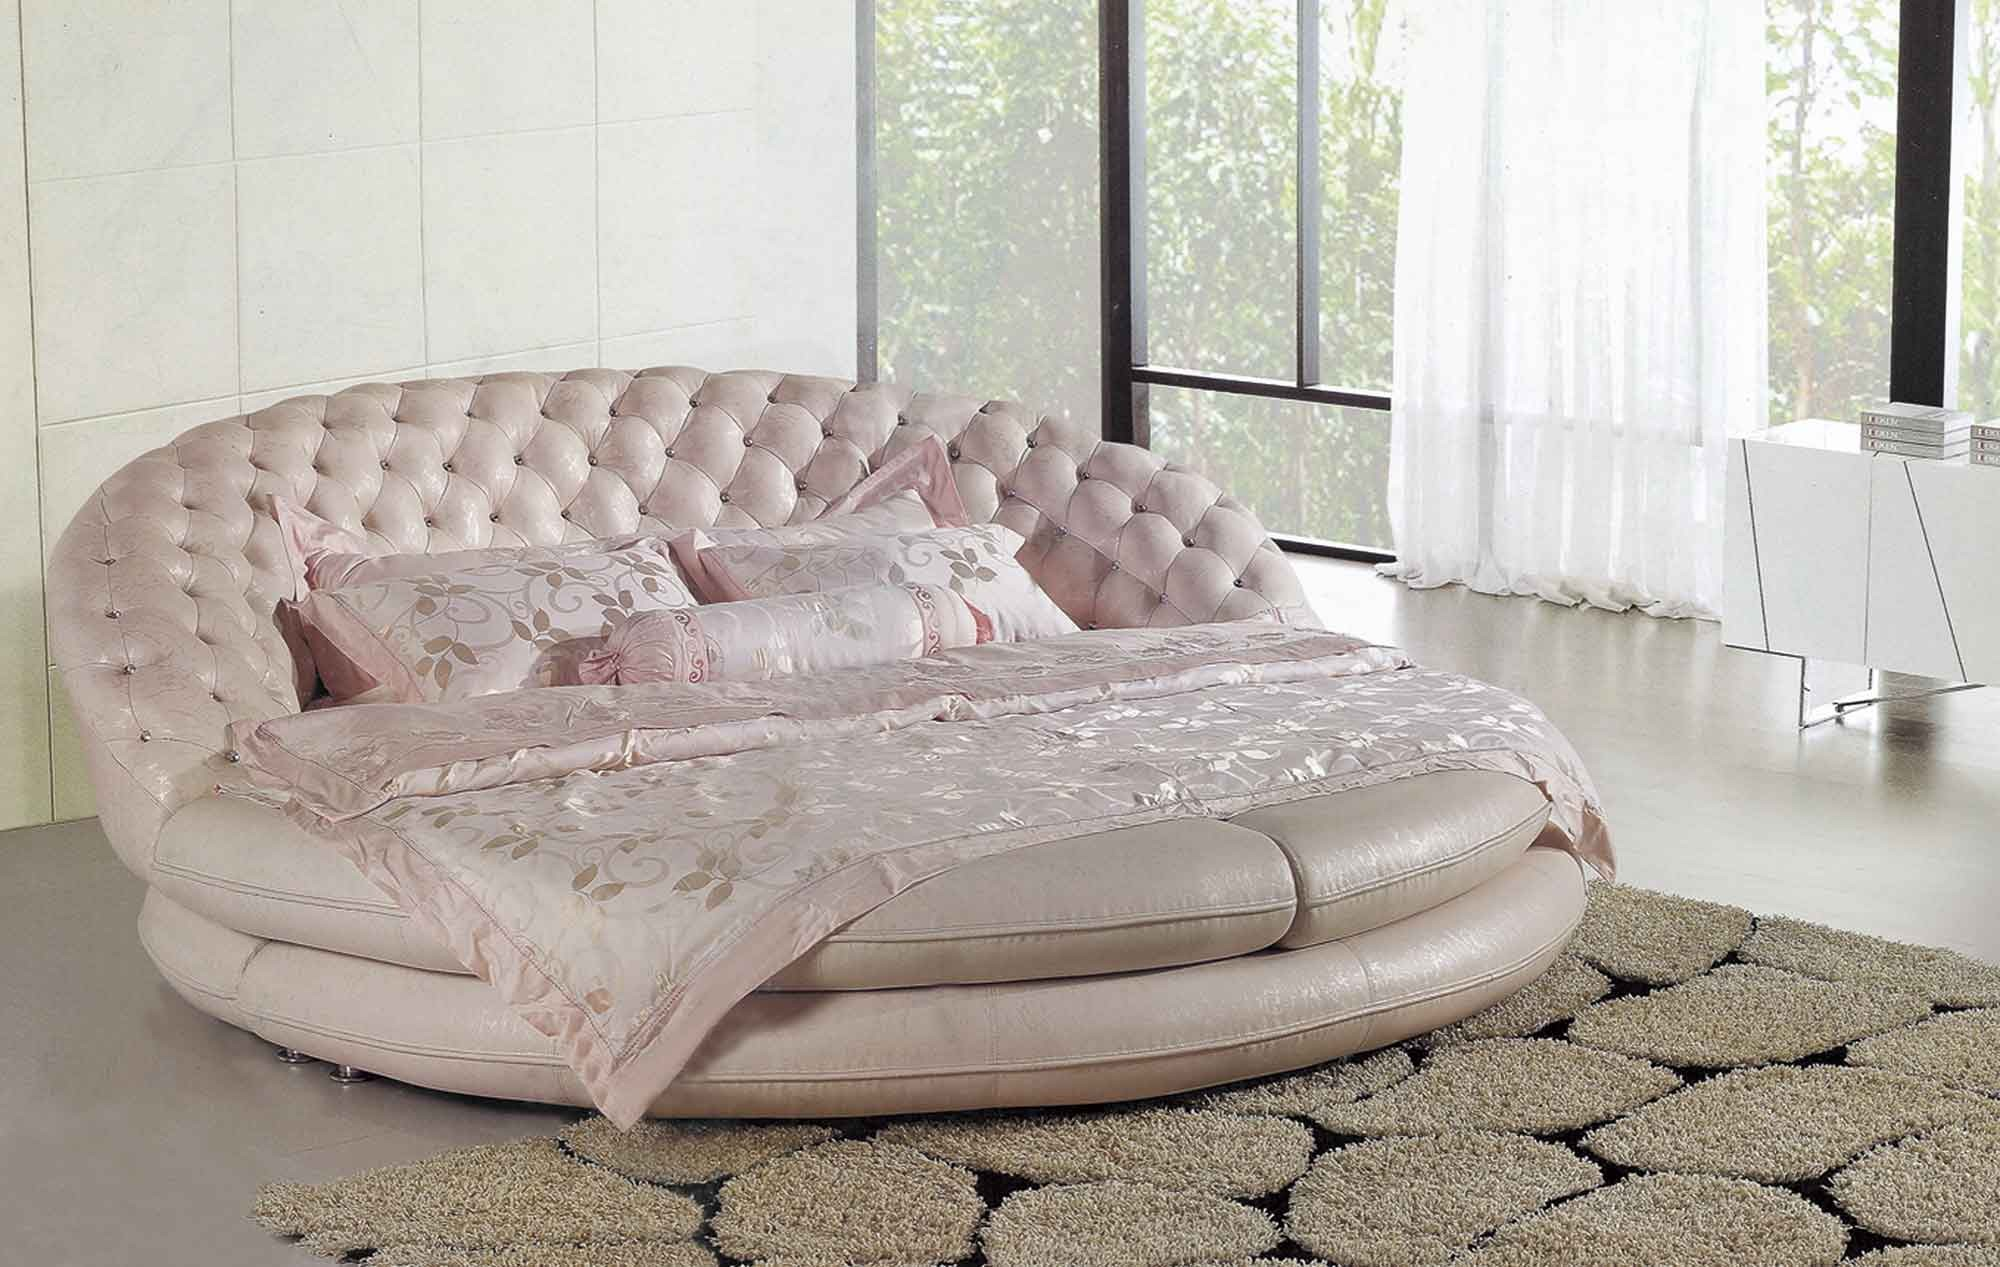 Circle bed for sale royal luxury round bed no pinterest for Round bed for kids